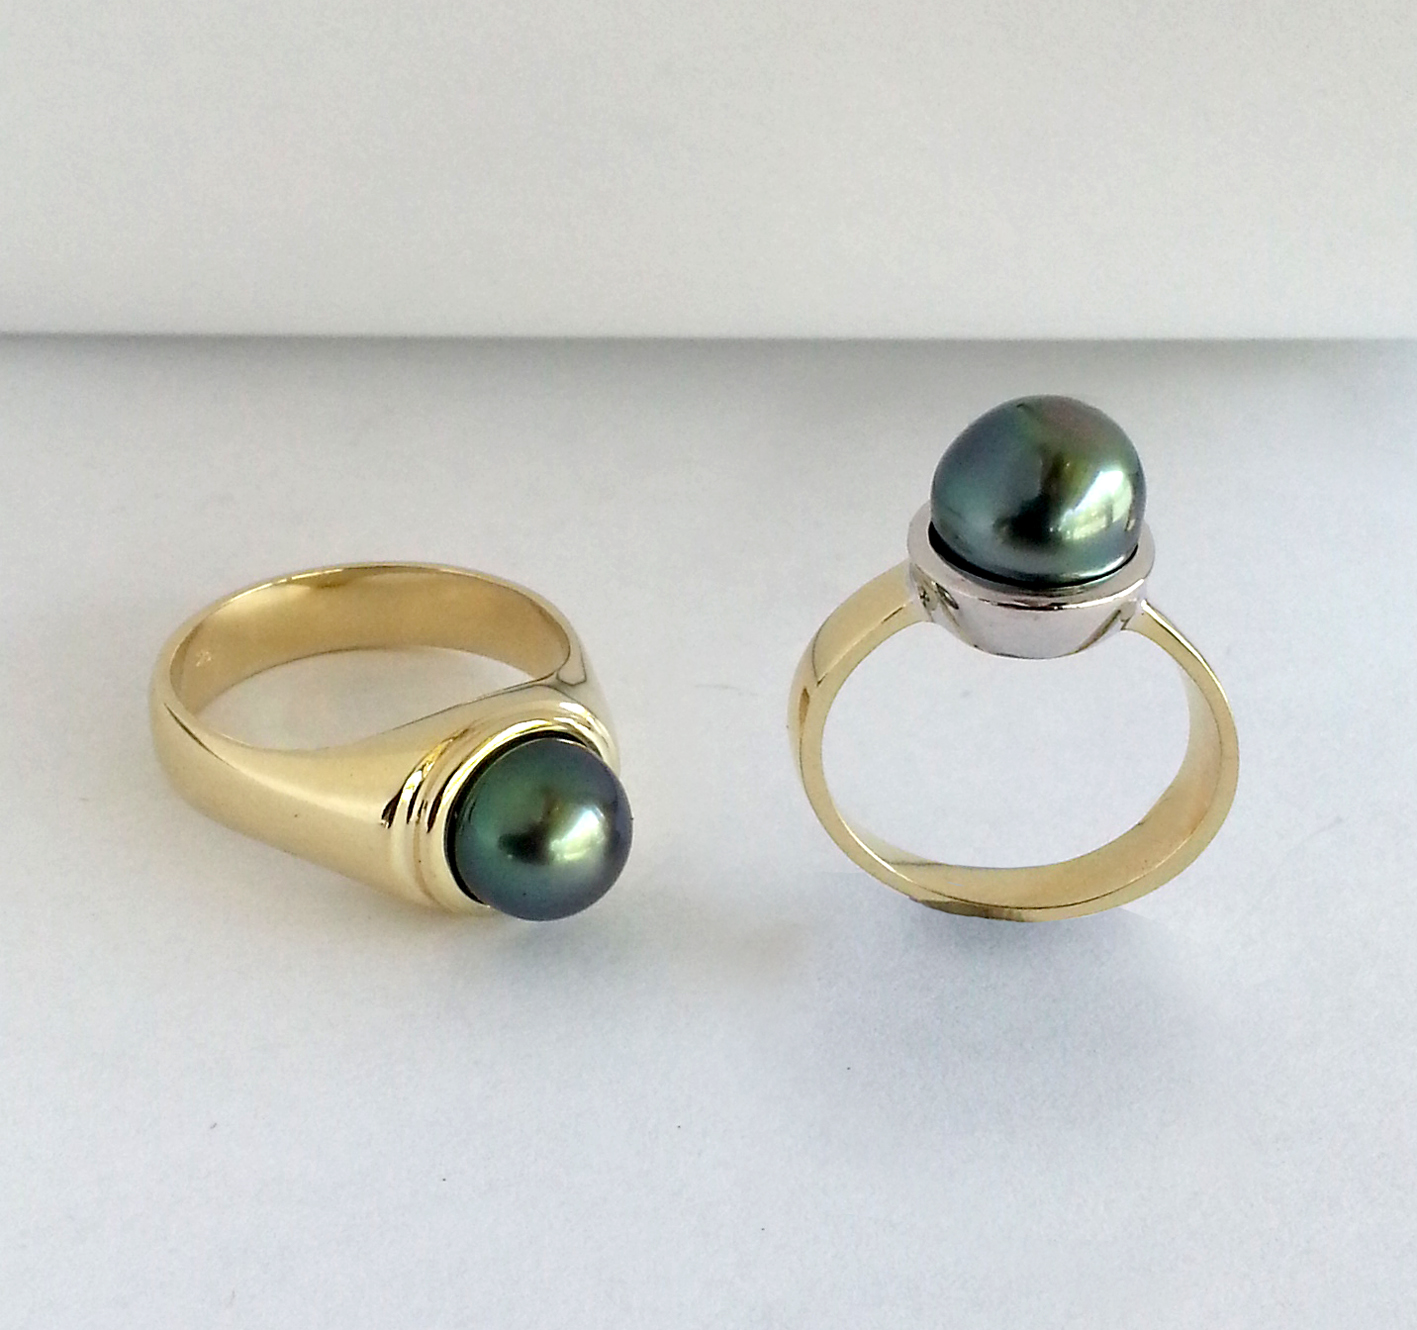 Pearl_ring_contemporary_design_gold_commemorative